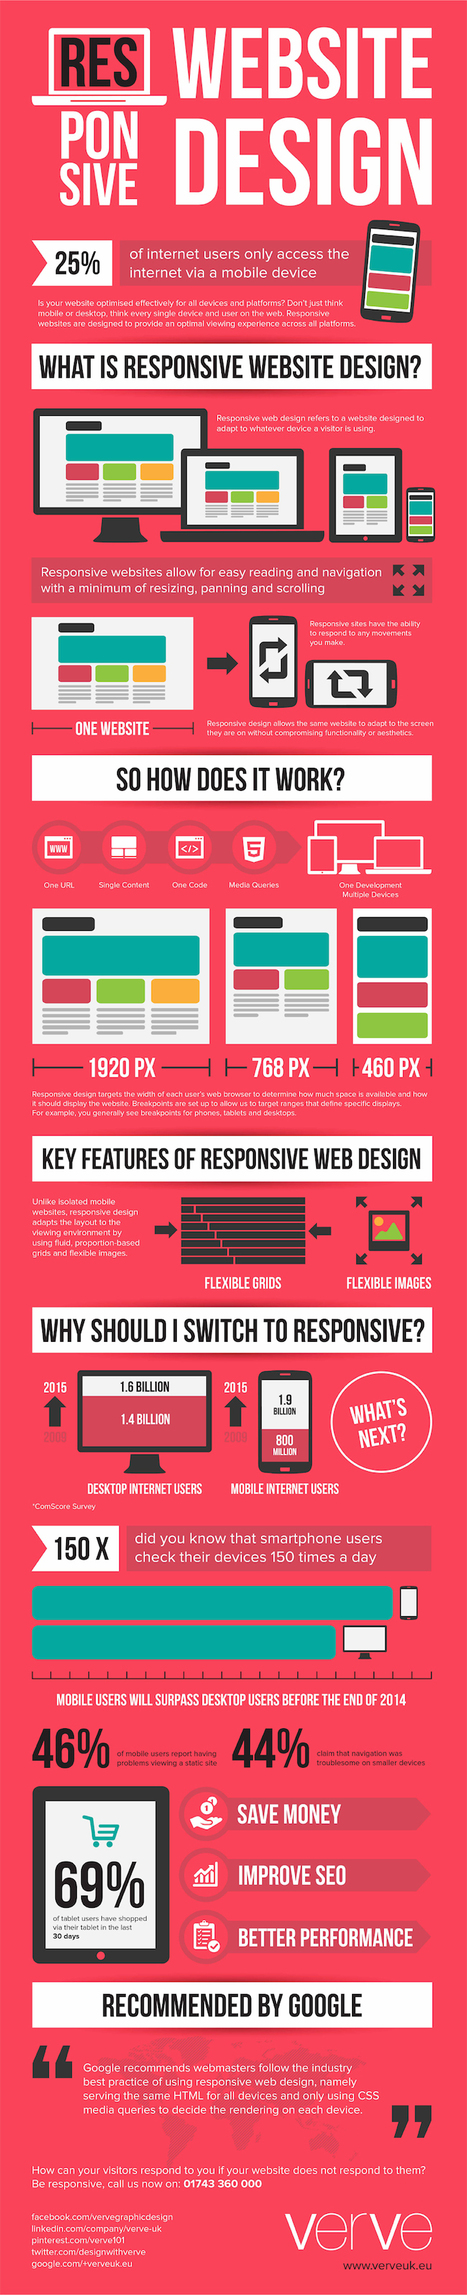 How Responsive Web Design Works [Infographic] - HubSpot | Conception internet | Scoop.it